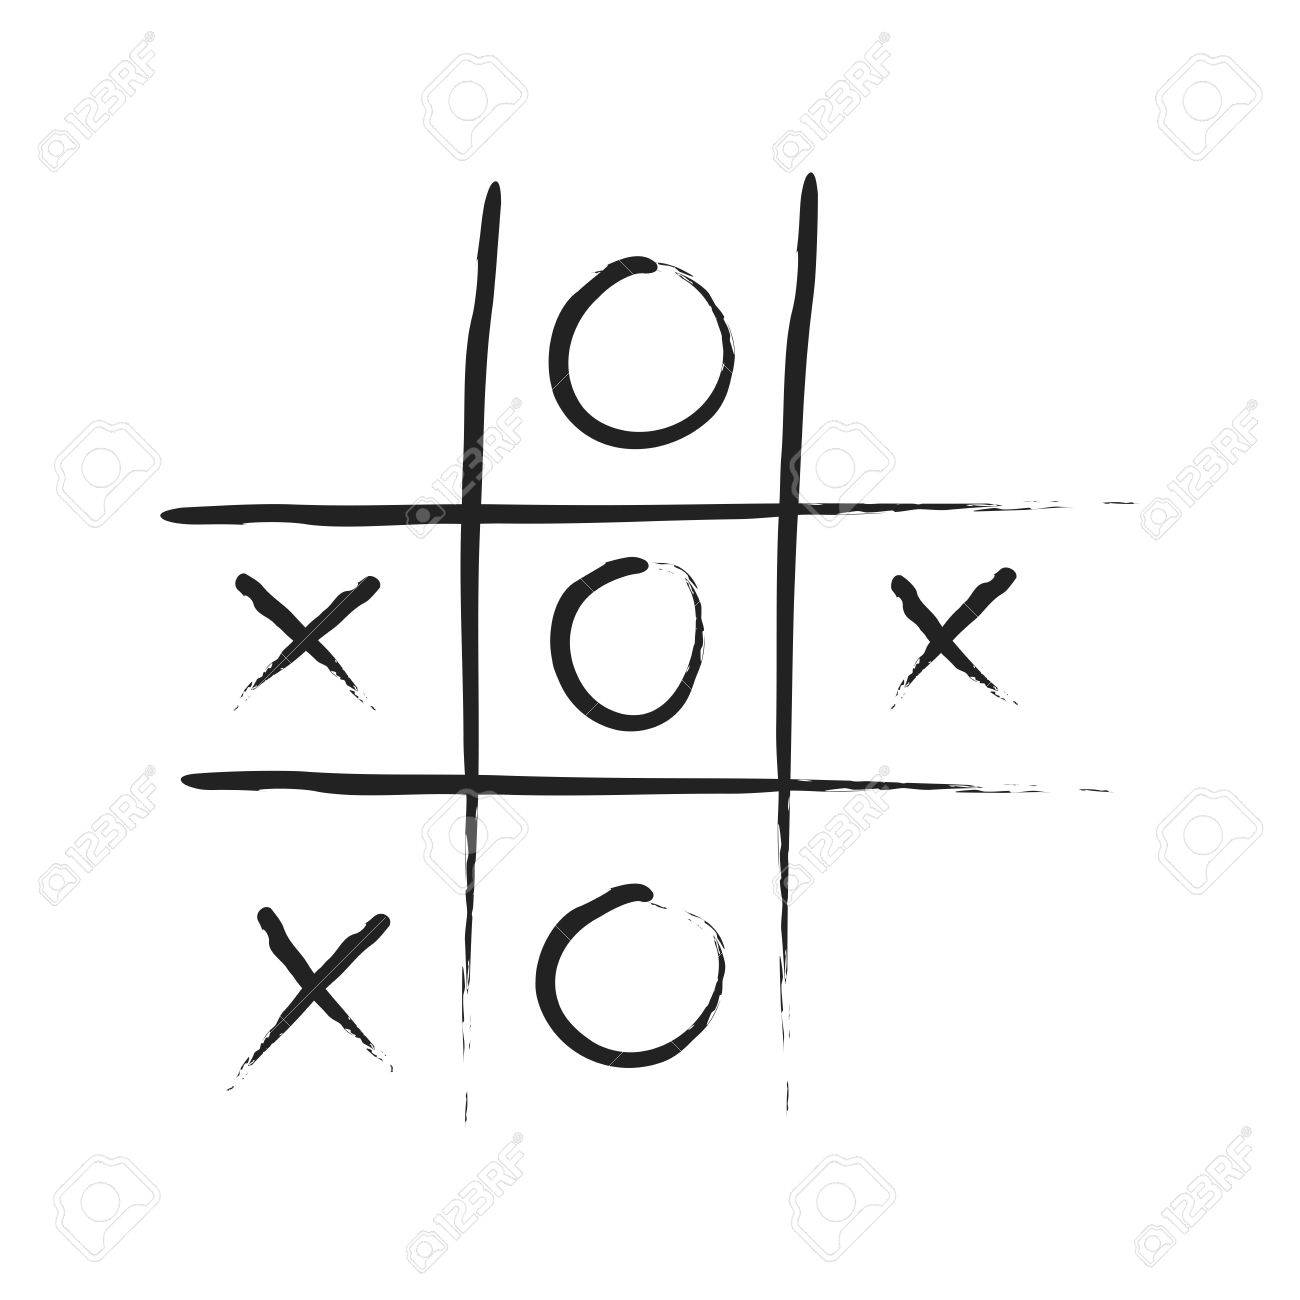 Hand Drawn Tic Tac Toe Game Stock Photo, Picture And Royalty Free ...